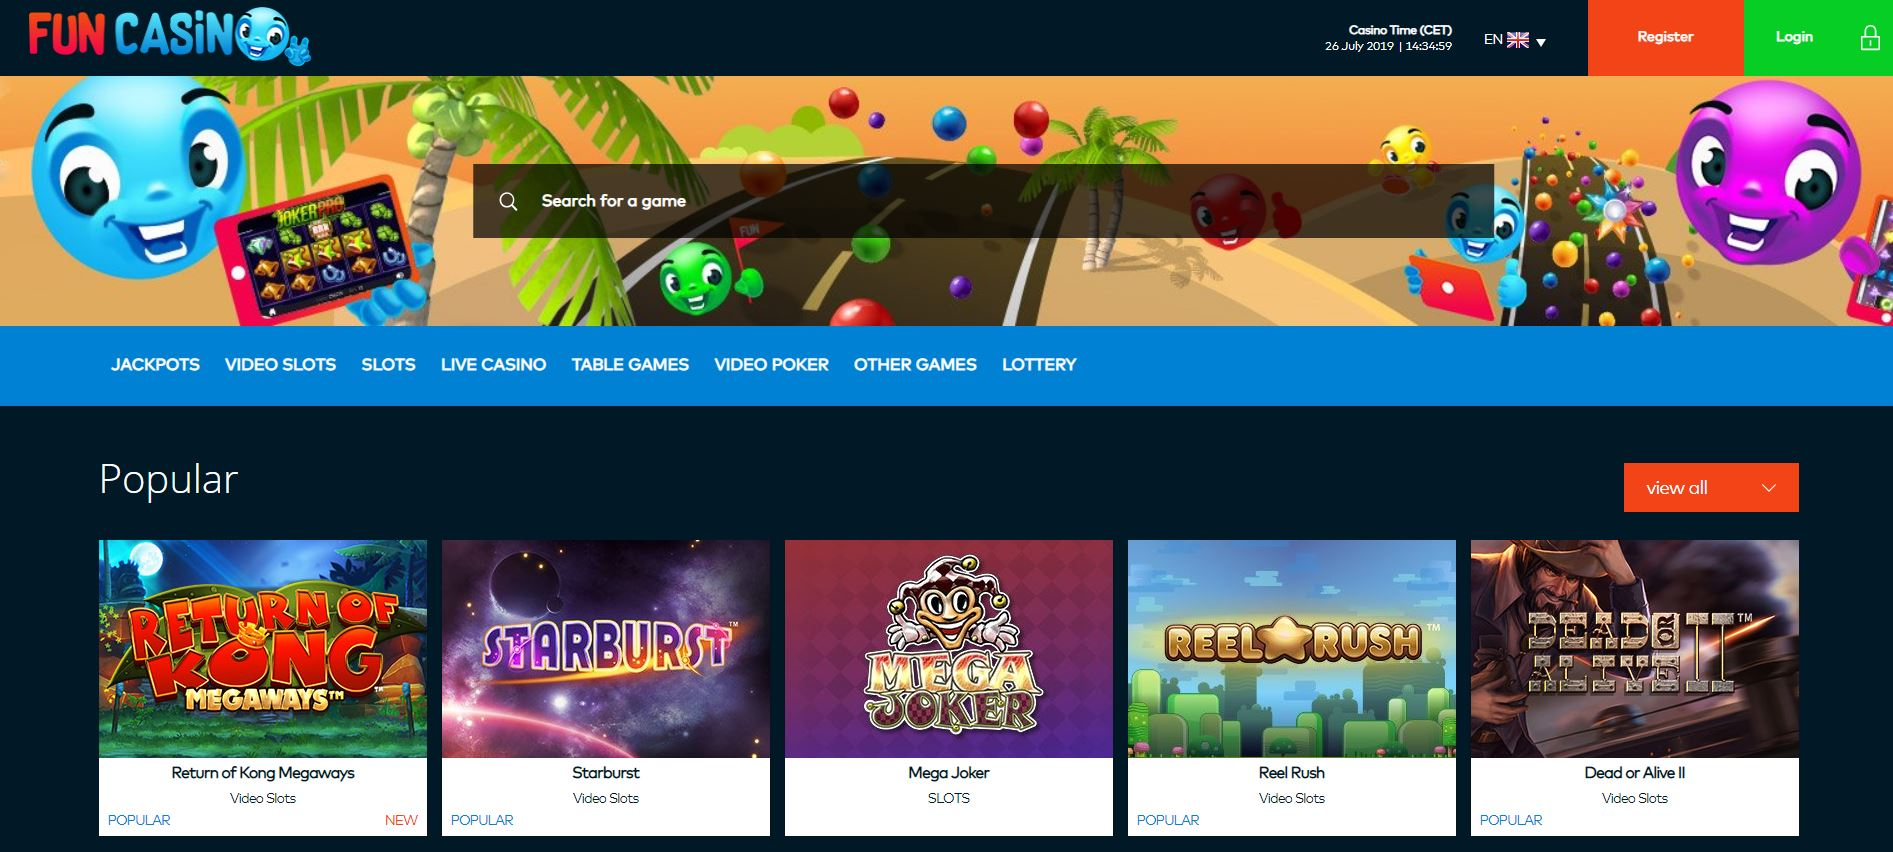 Home Page at FUN Casino